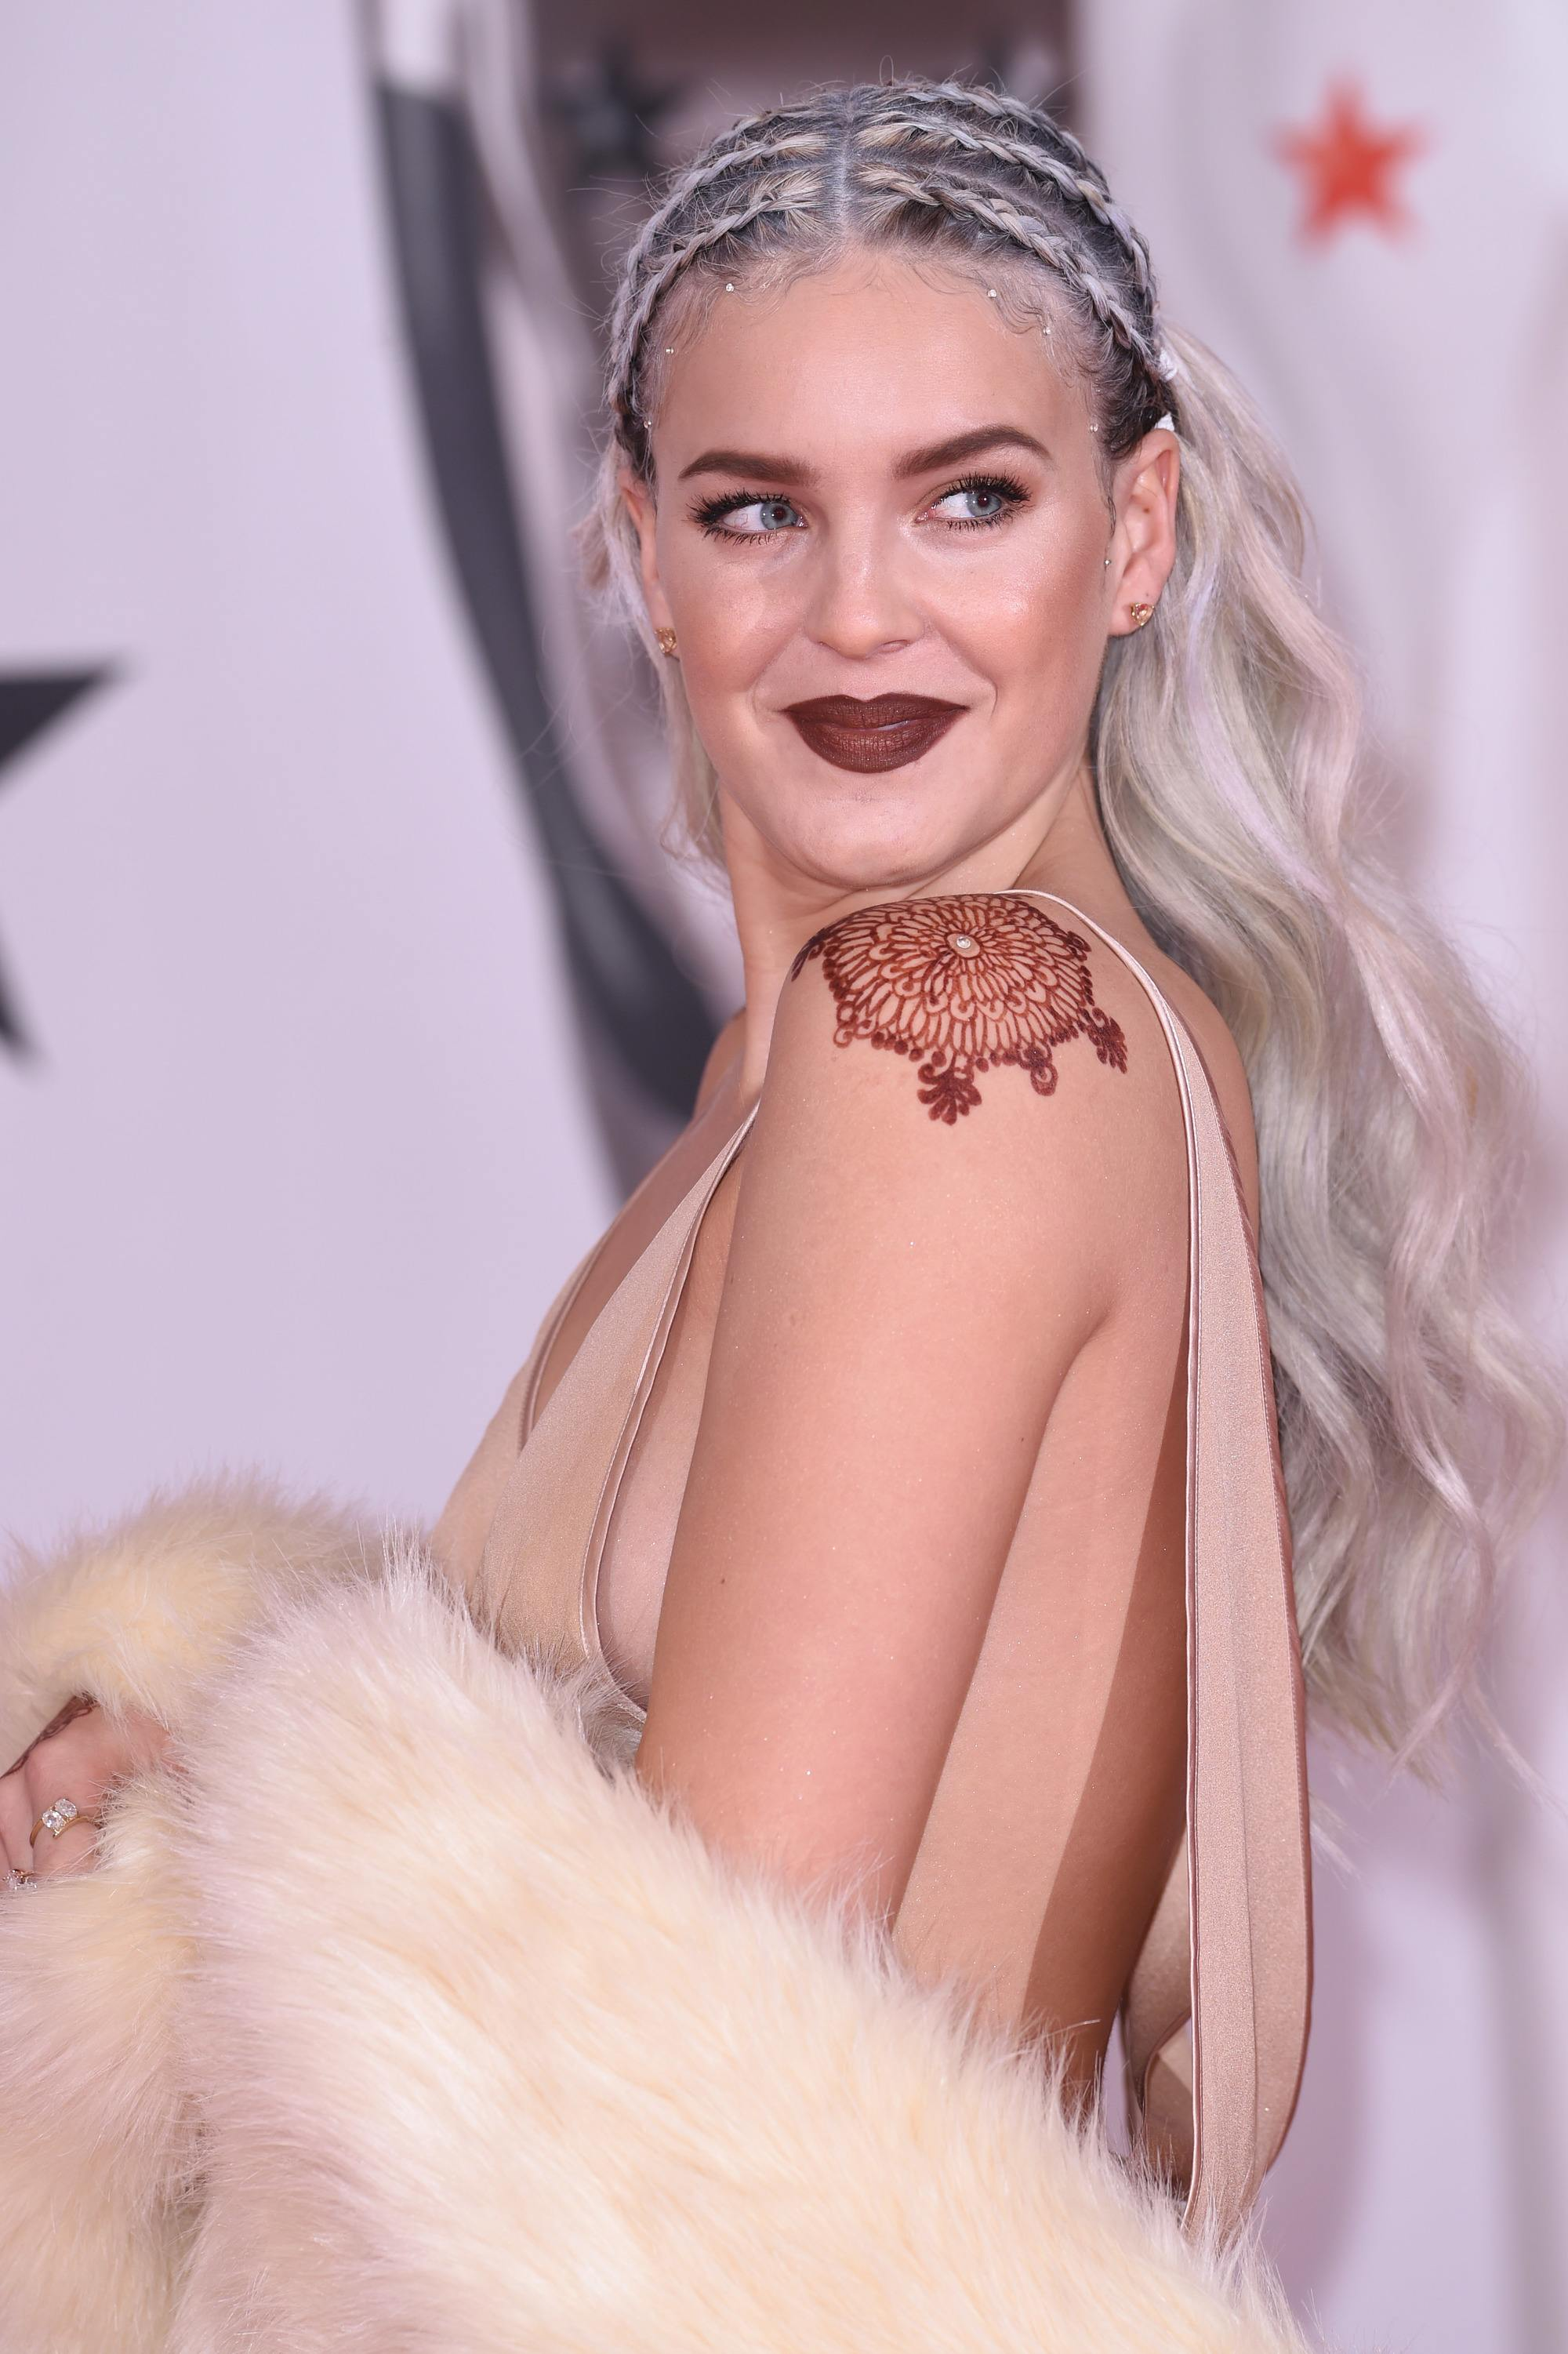 hairstyles for wavy hair : anne-marie brit awards long silver wavy hair styled with cornrow braids at the top